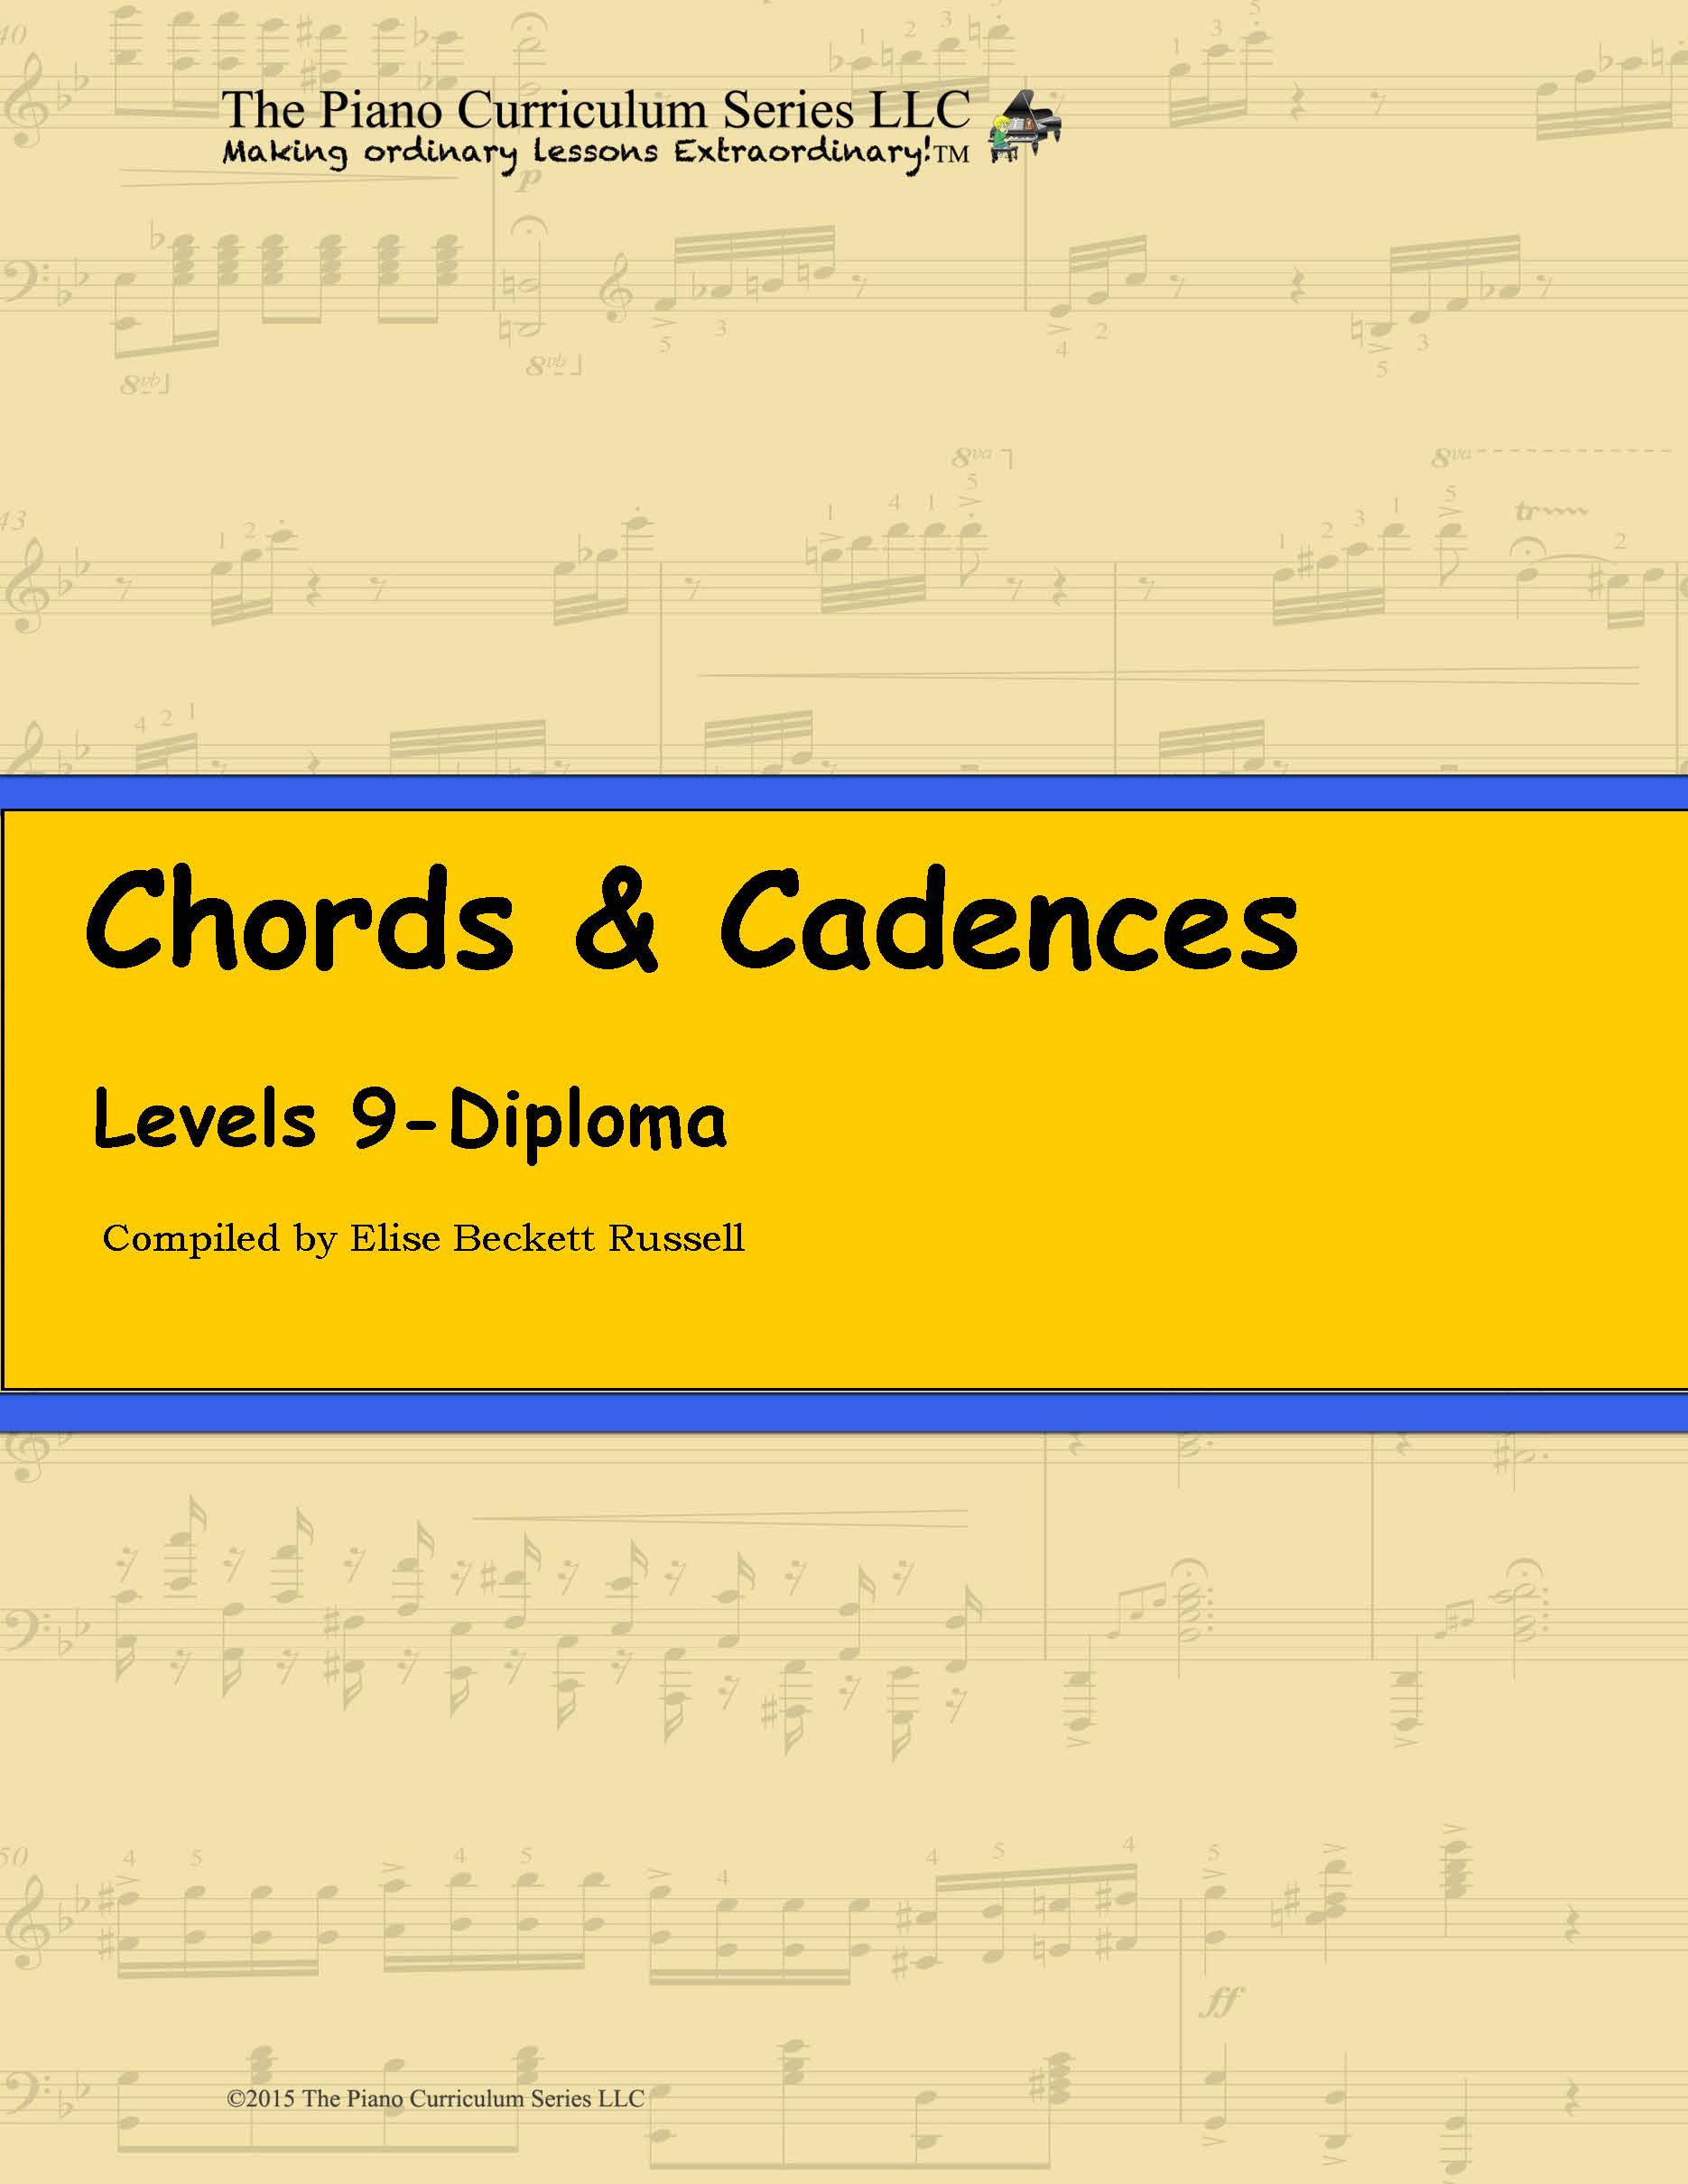 Outstanding Yellow Piano Chords Collection Song Chords Images